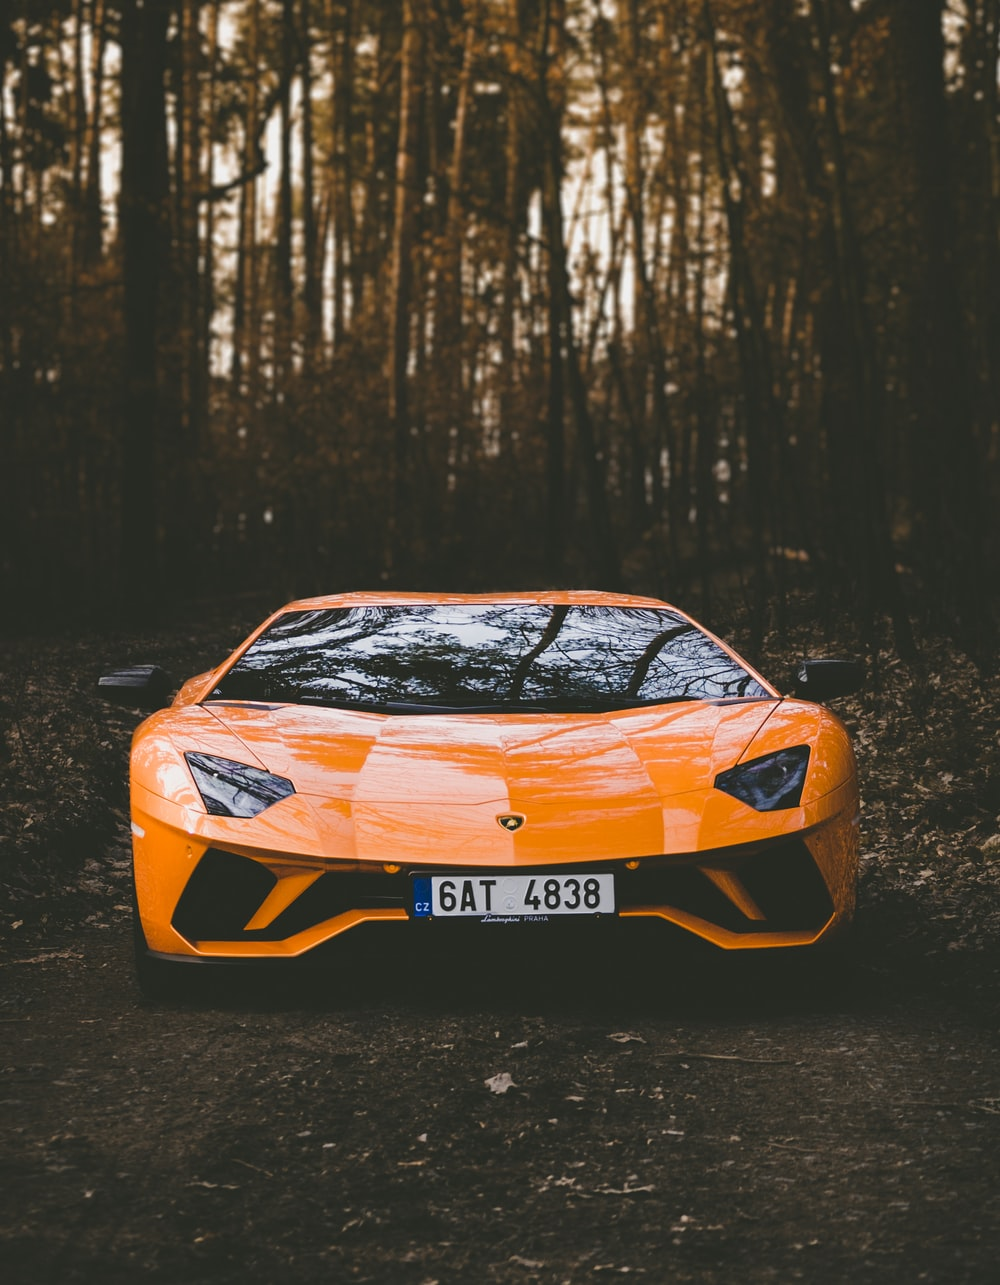 Car Vehicle Sports Car And Car Wallpaper Hd Photo By Marcus P